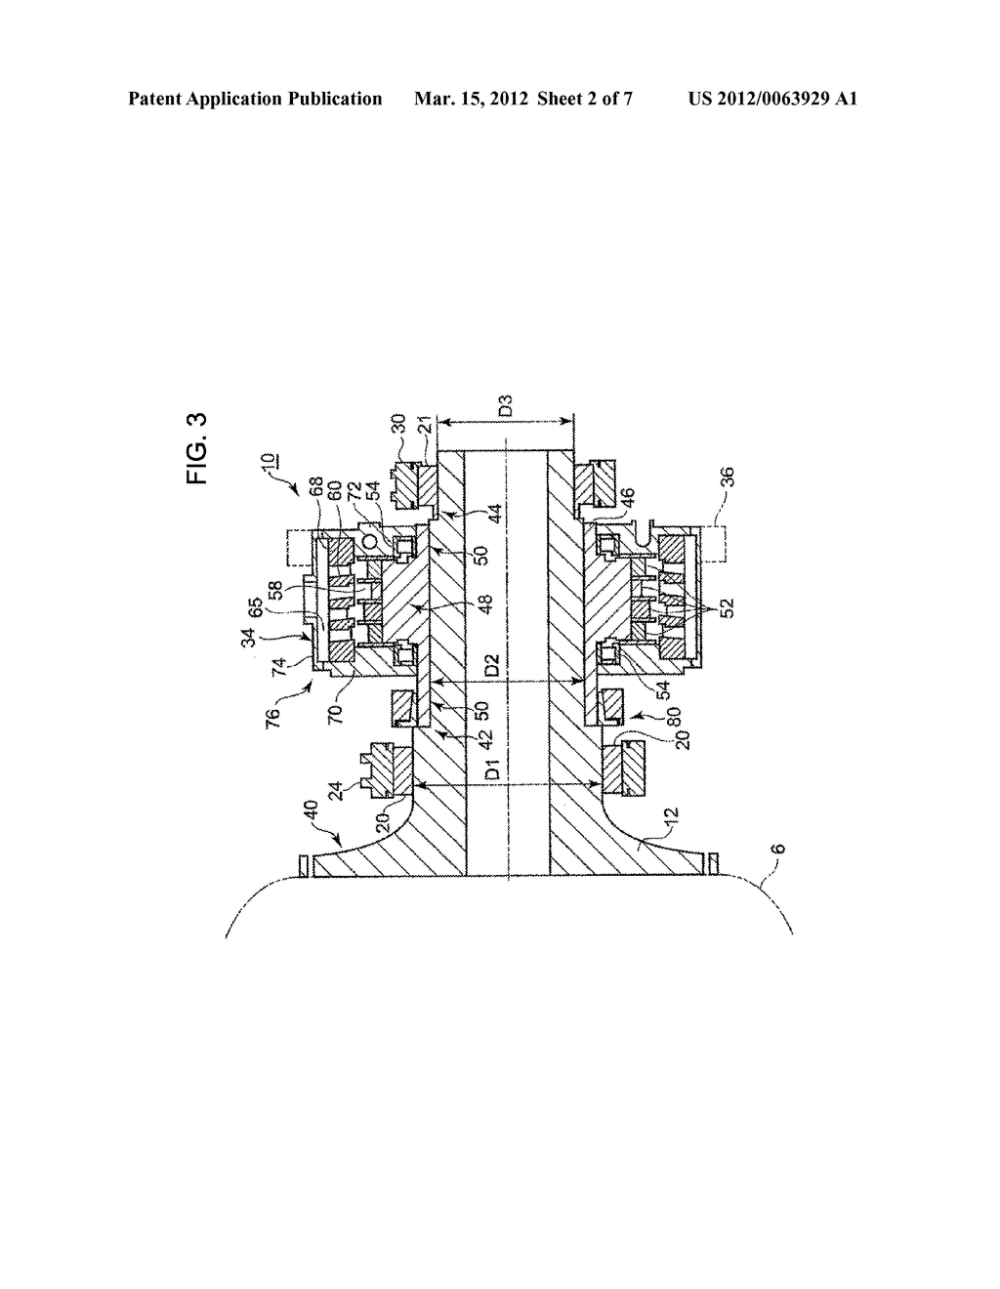 medium resolution of hydraulic pump structure for wind turbine generator or tidal current generator and method of mounting hydraulic pump diagram schematic and image 03